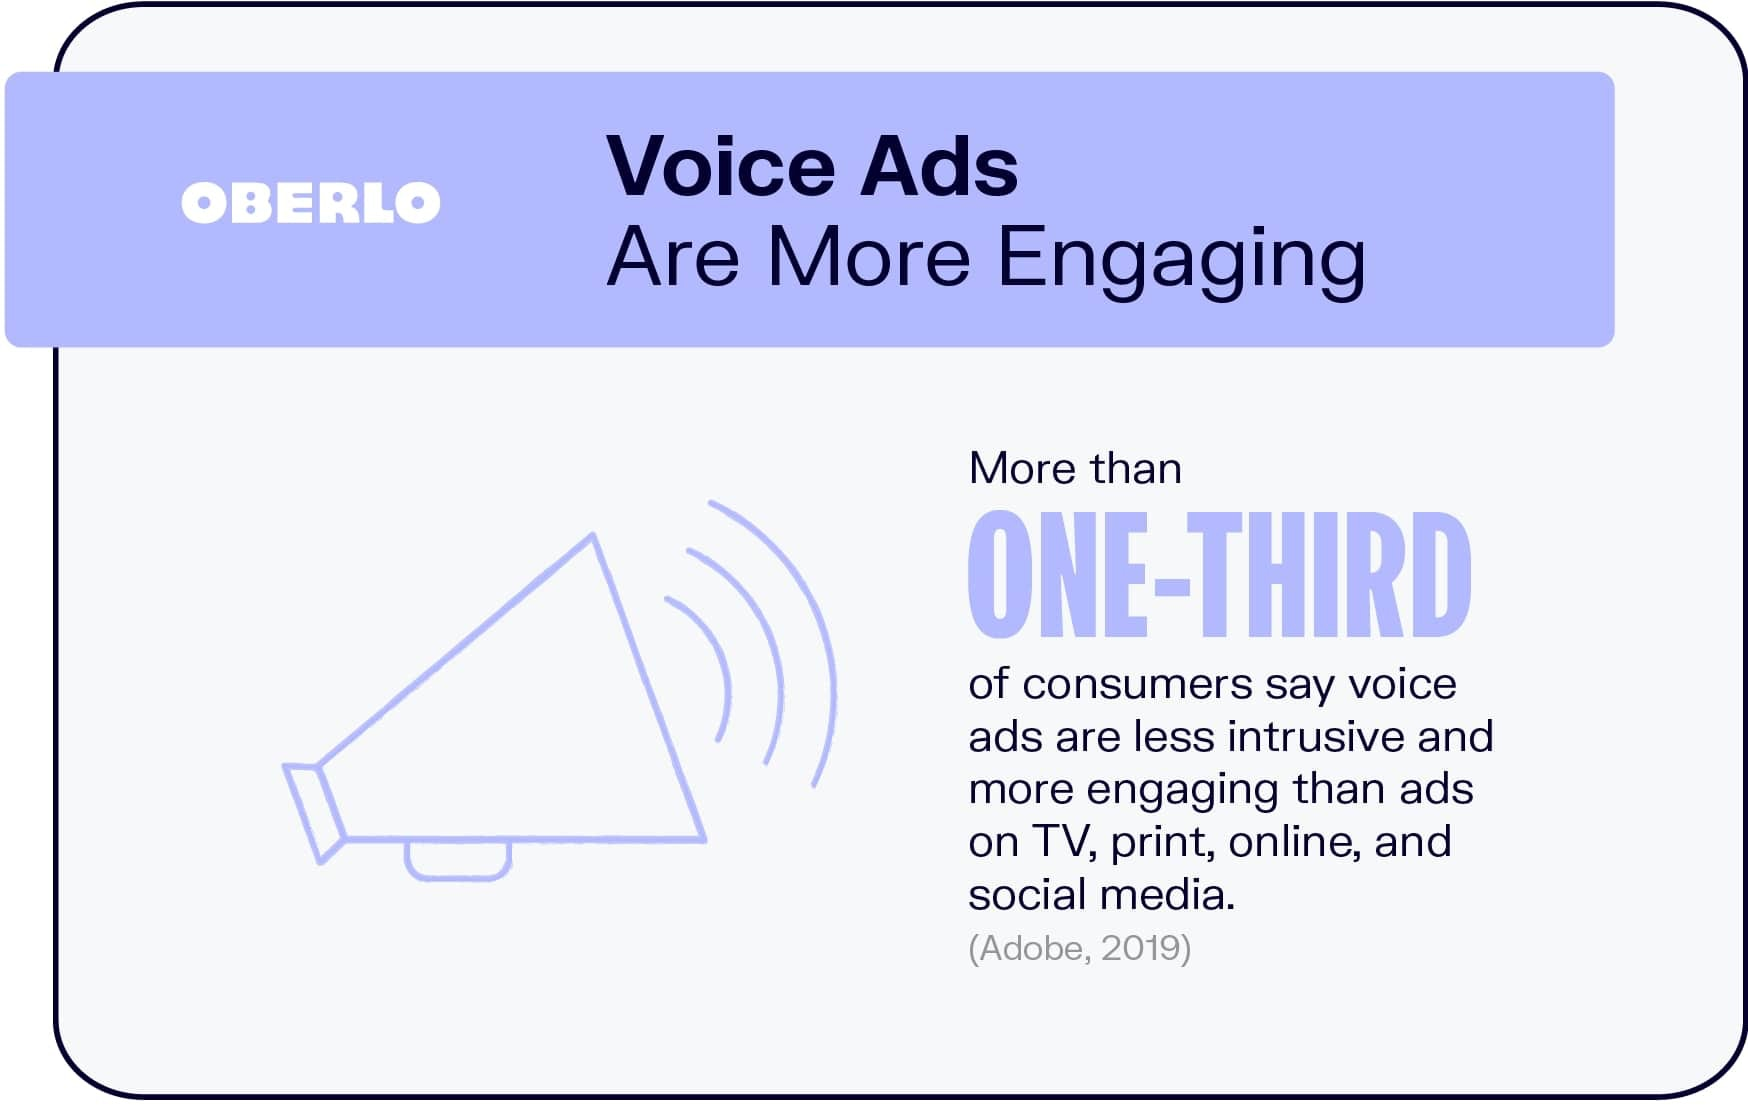 Voice Ads Are More Engaging